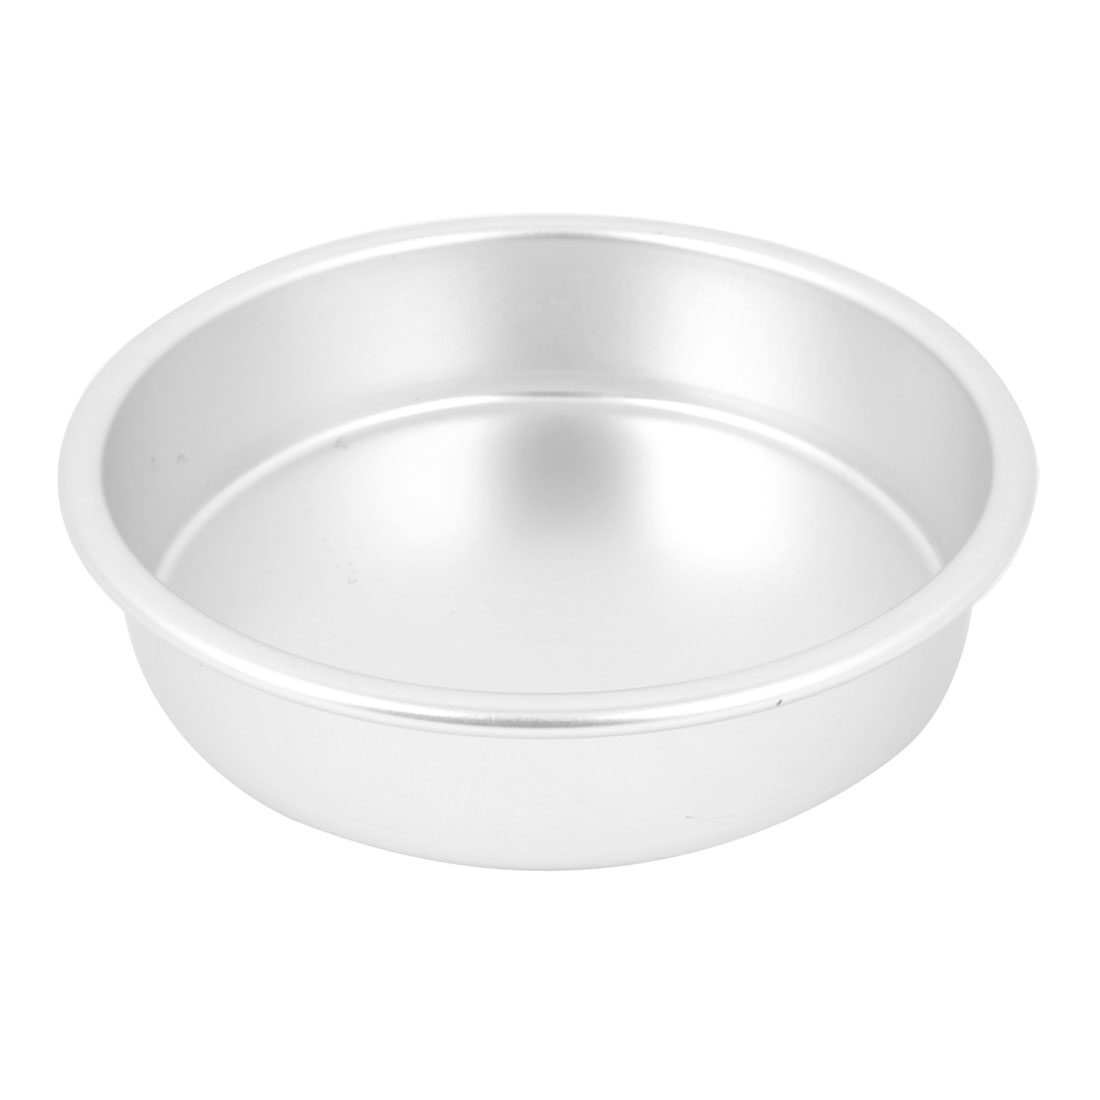 "Baking Round Aluminum Alloy Bottom Cake Mold Mould Pot 4"" Dia"